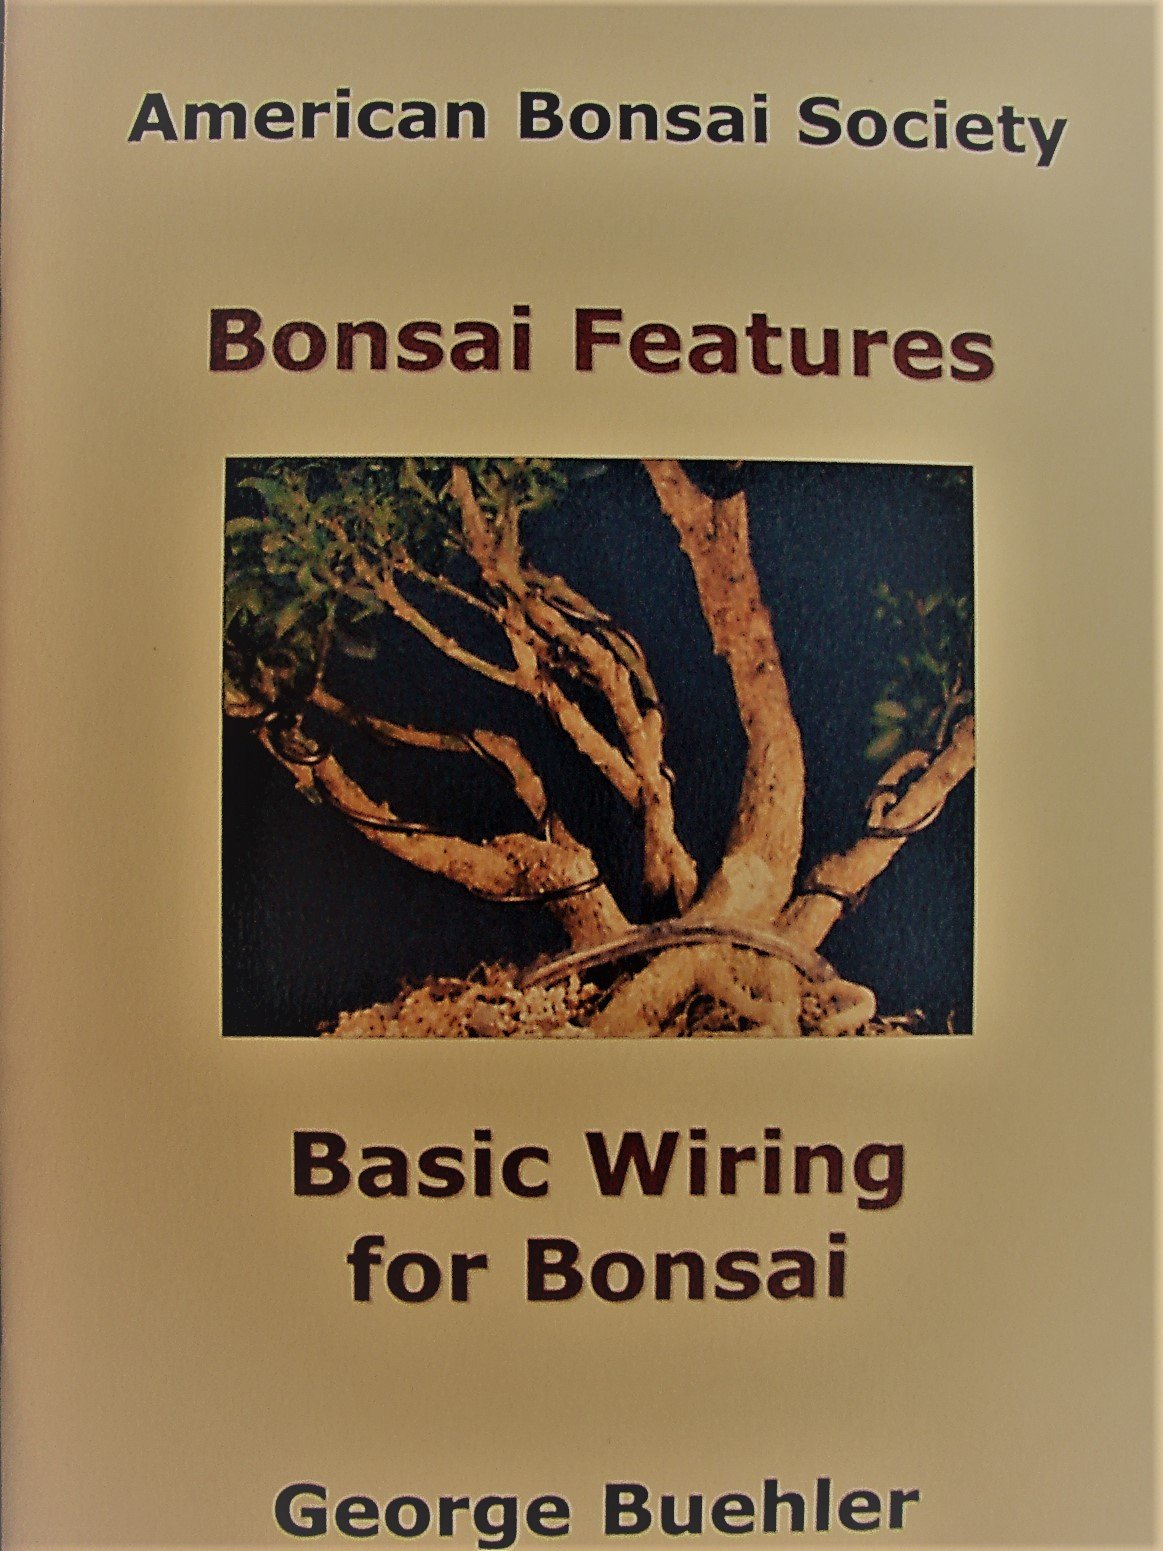 Triangle Bonsai Tbs Library Wiring For Beginners Buehler George Basic 38 Pages Beginner Information